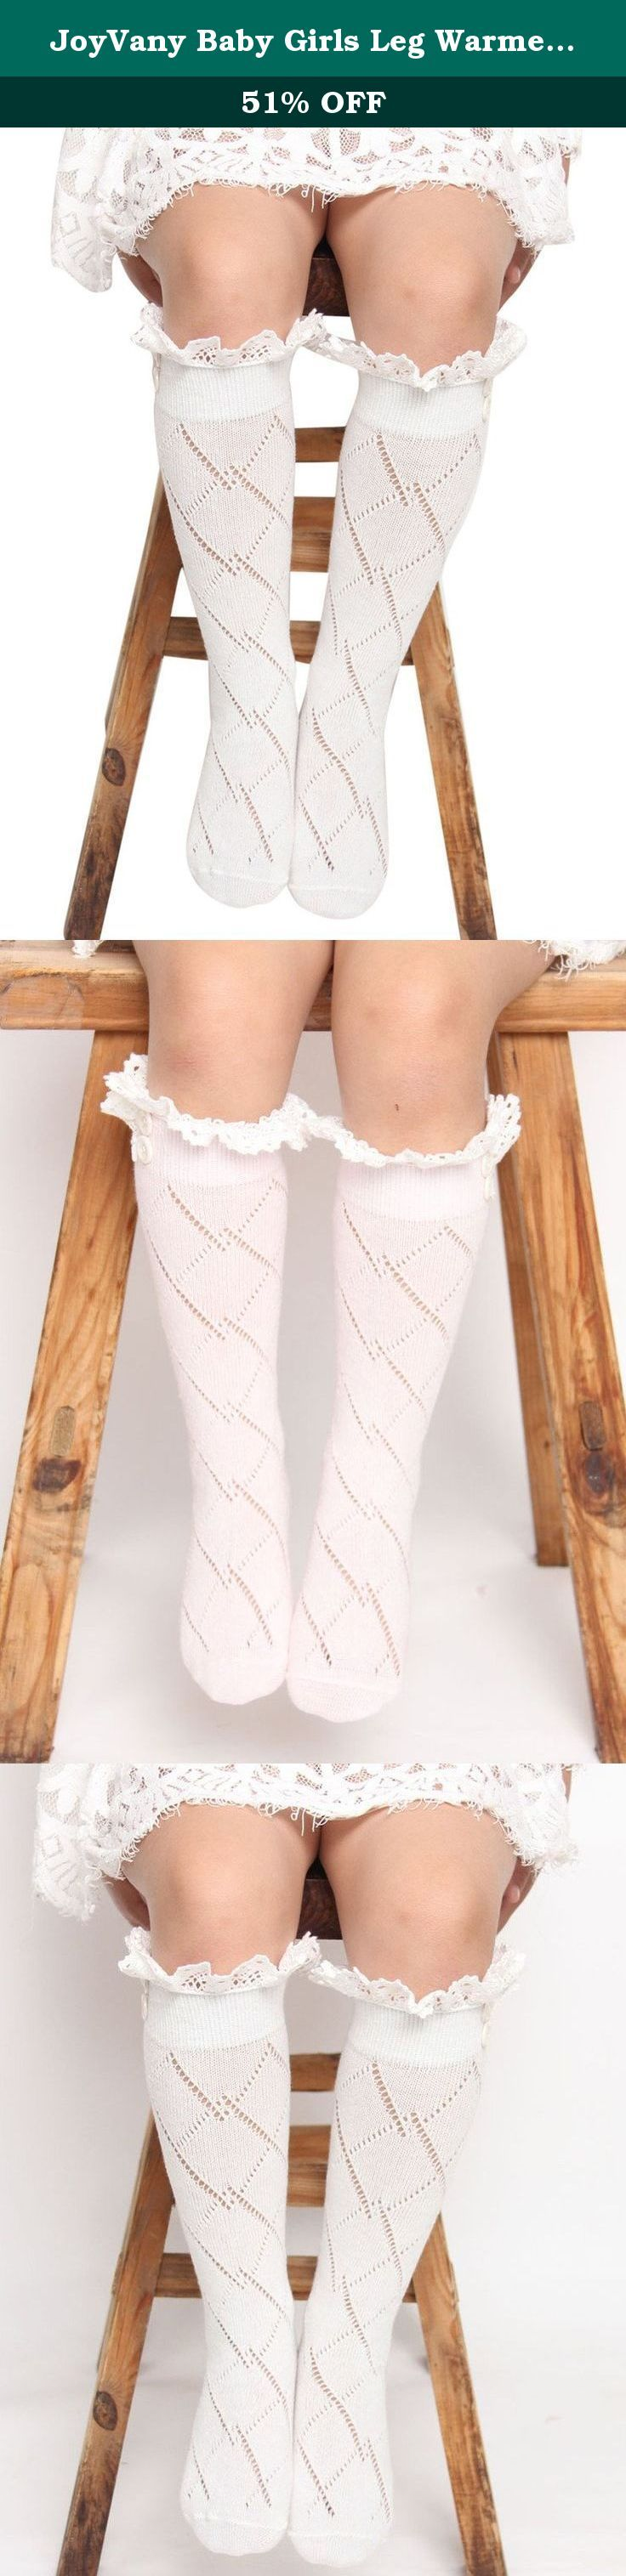 JoyVany Baby Girls Leg Warmers Cotton Cute Knee Socks Unisex Toddler Boot Socks White. JoyVany Baby Girls Leg Warmers Cotton Cute Knee Socks Unisex Toddler Boot Socks 1. JoyVany offers the best leg warmers with premium quality. 2. One size fits all. 3. Great for daily wear 4.Any questions, delivery and after-service, Please feel free to contact us, we will respond you within 24 hours. 5. Standard shipping service need 1-2 weeks and expedited shipping service need only 2-4 days. .